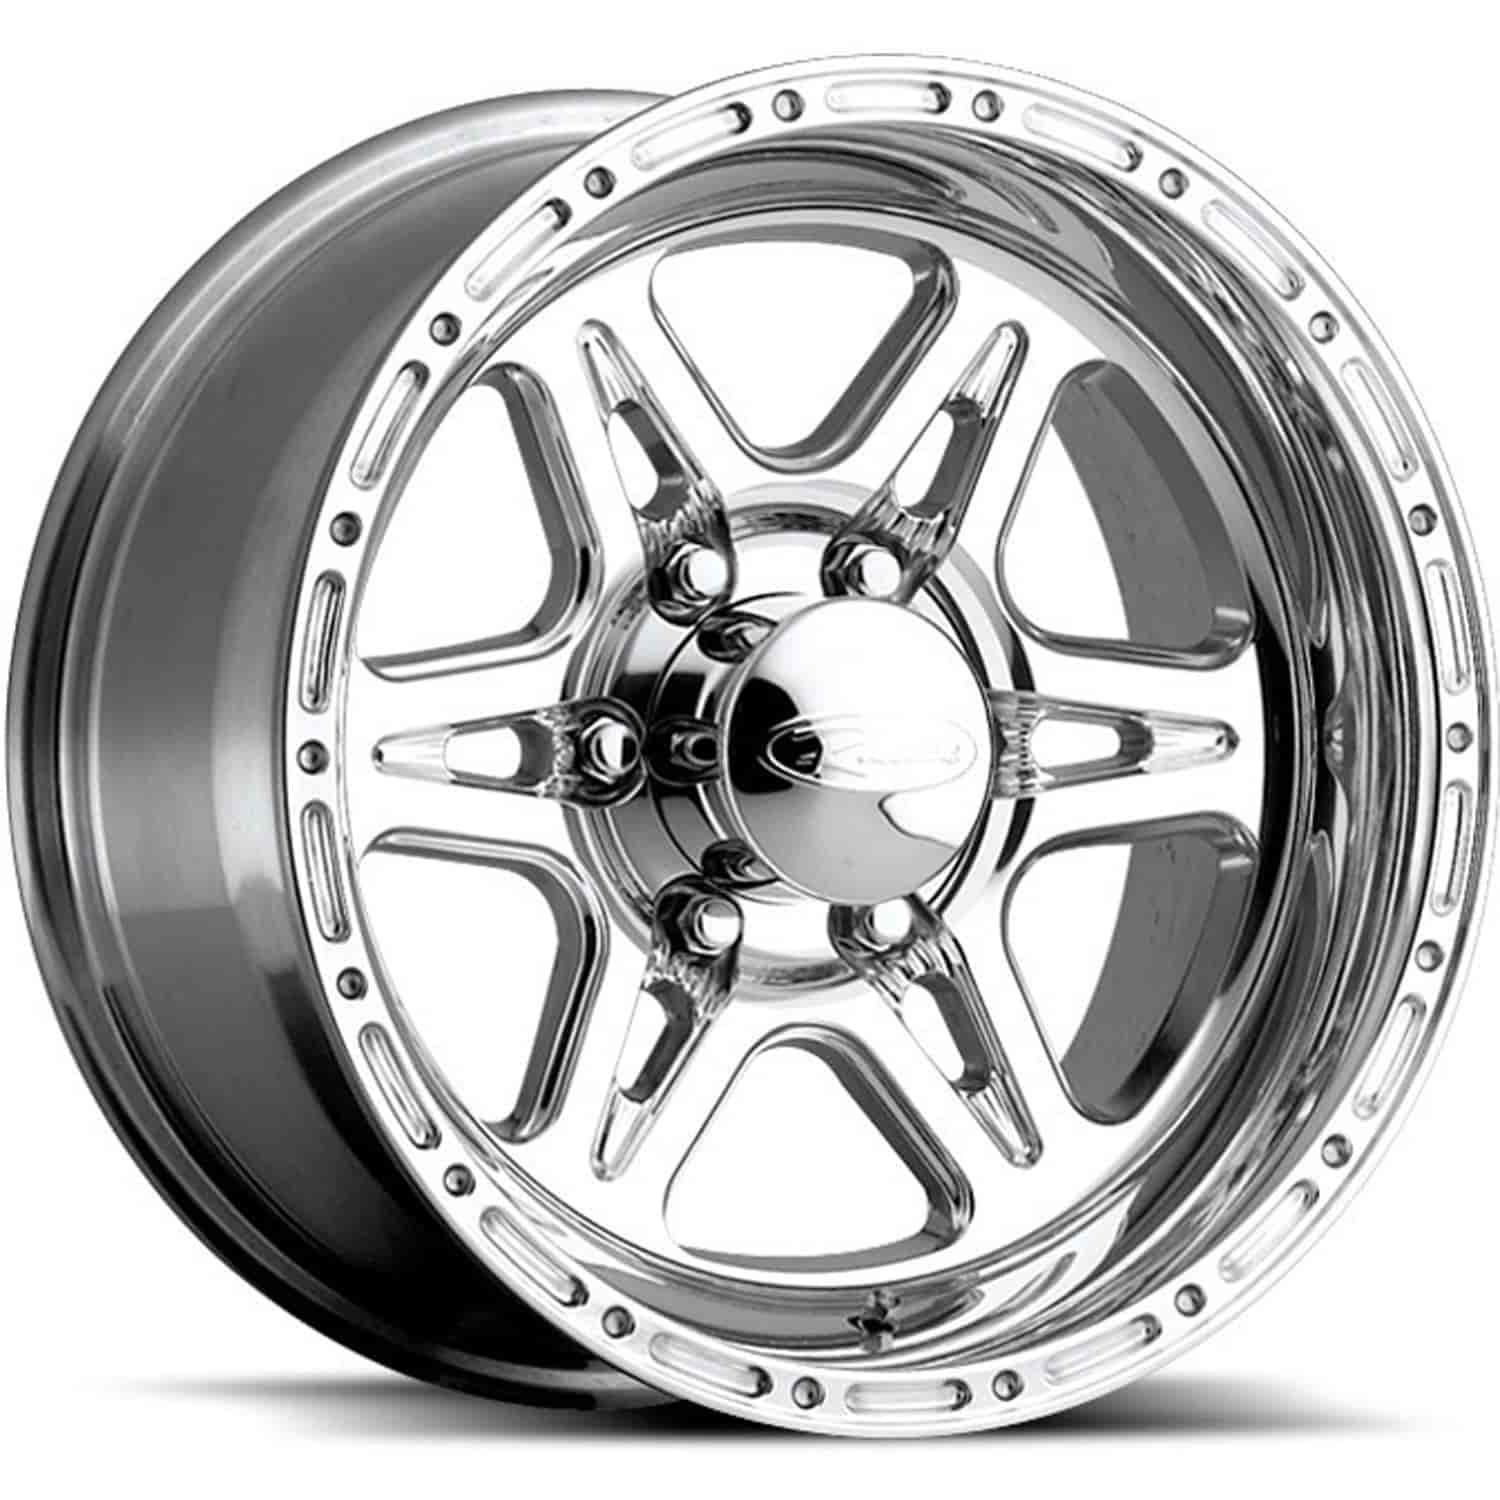 Raceline Wheels 896-68060